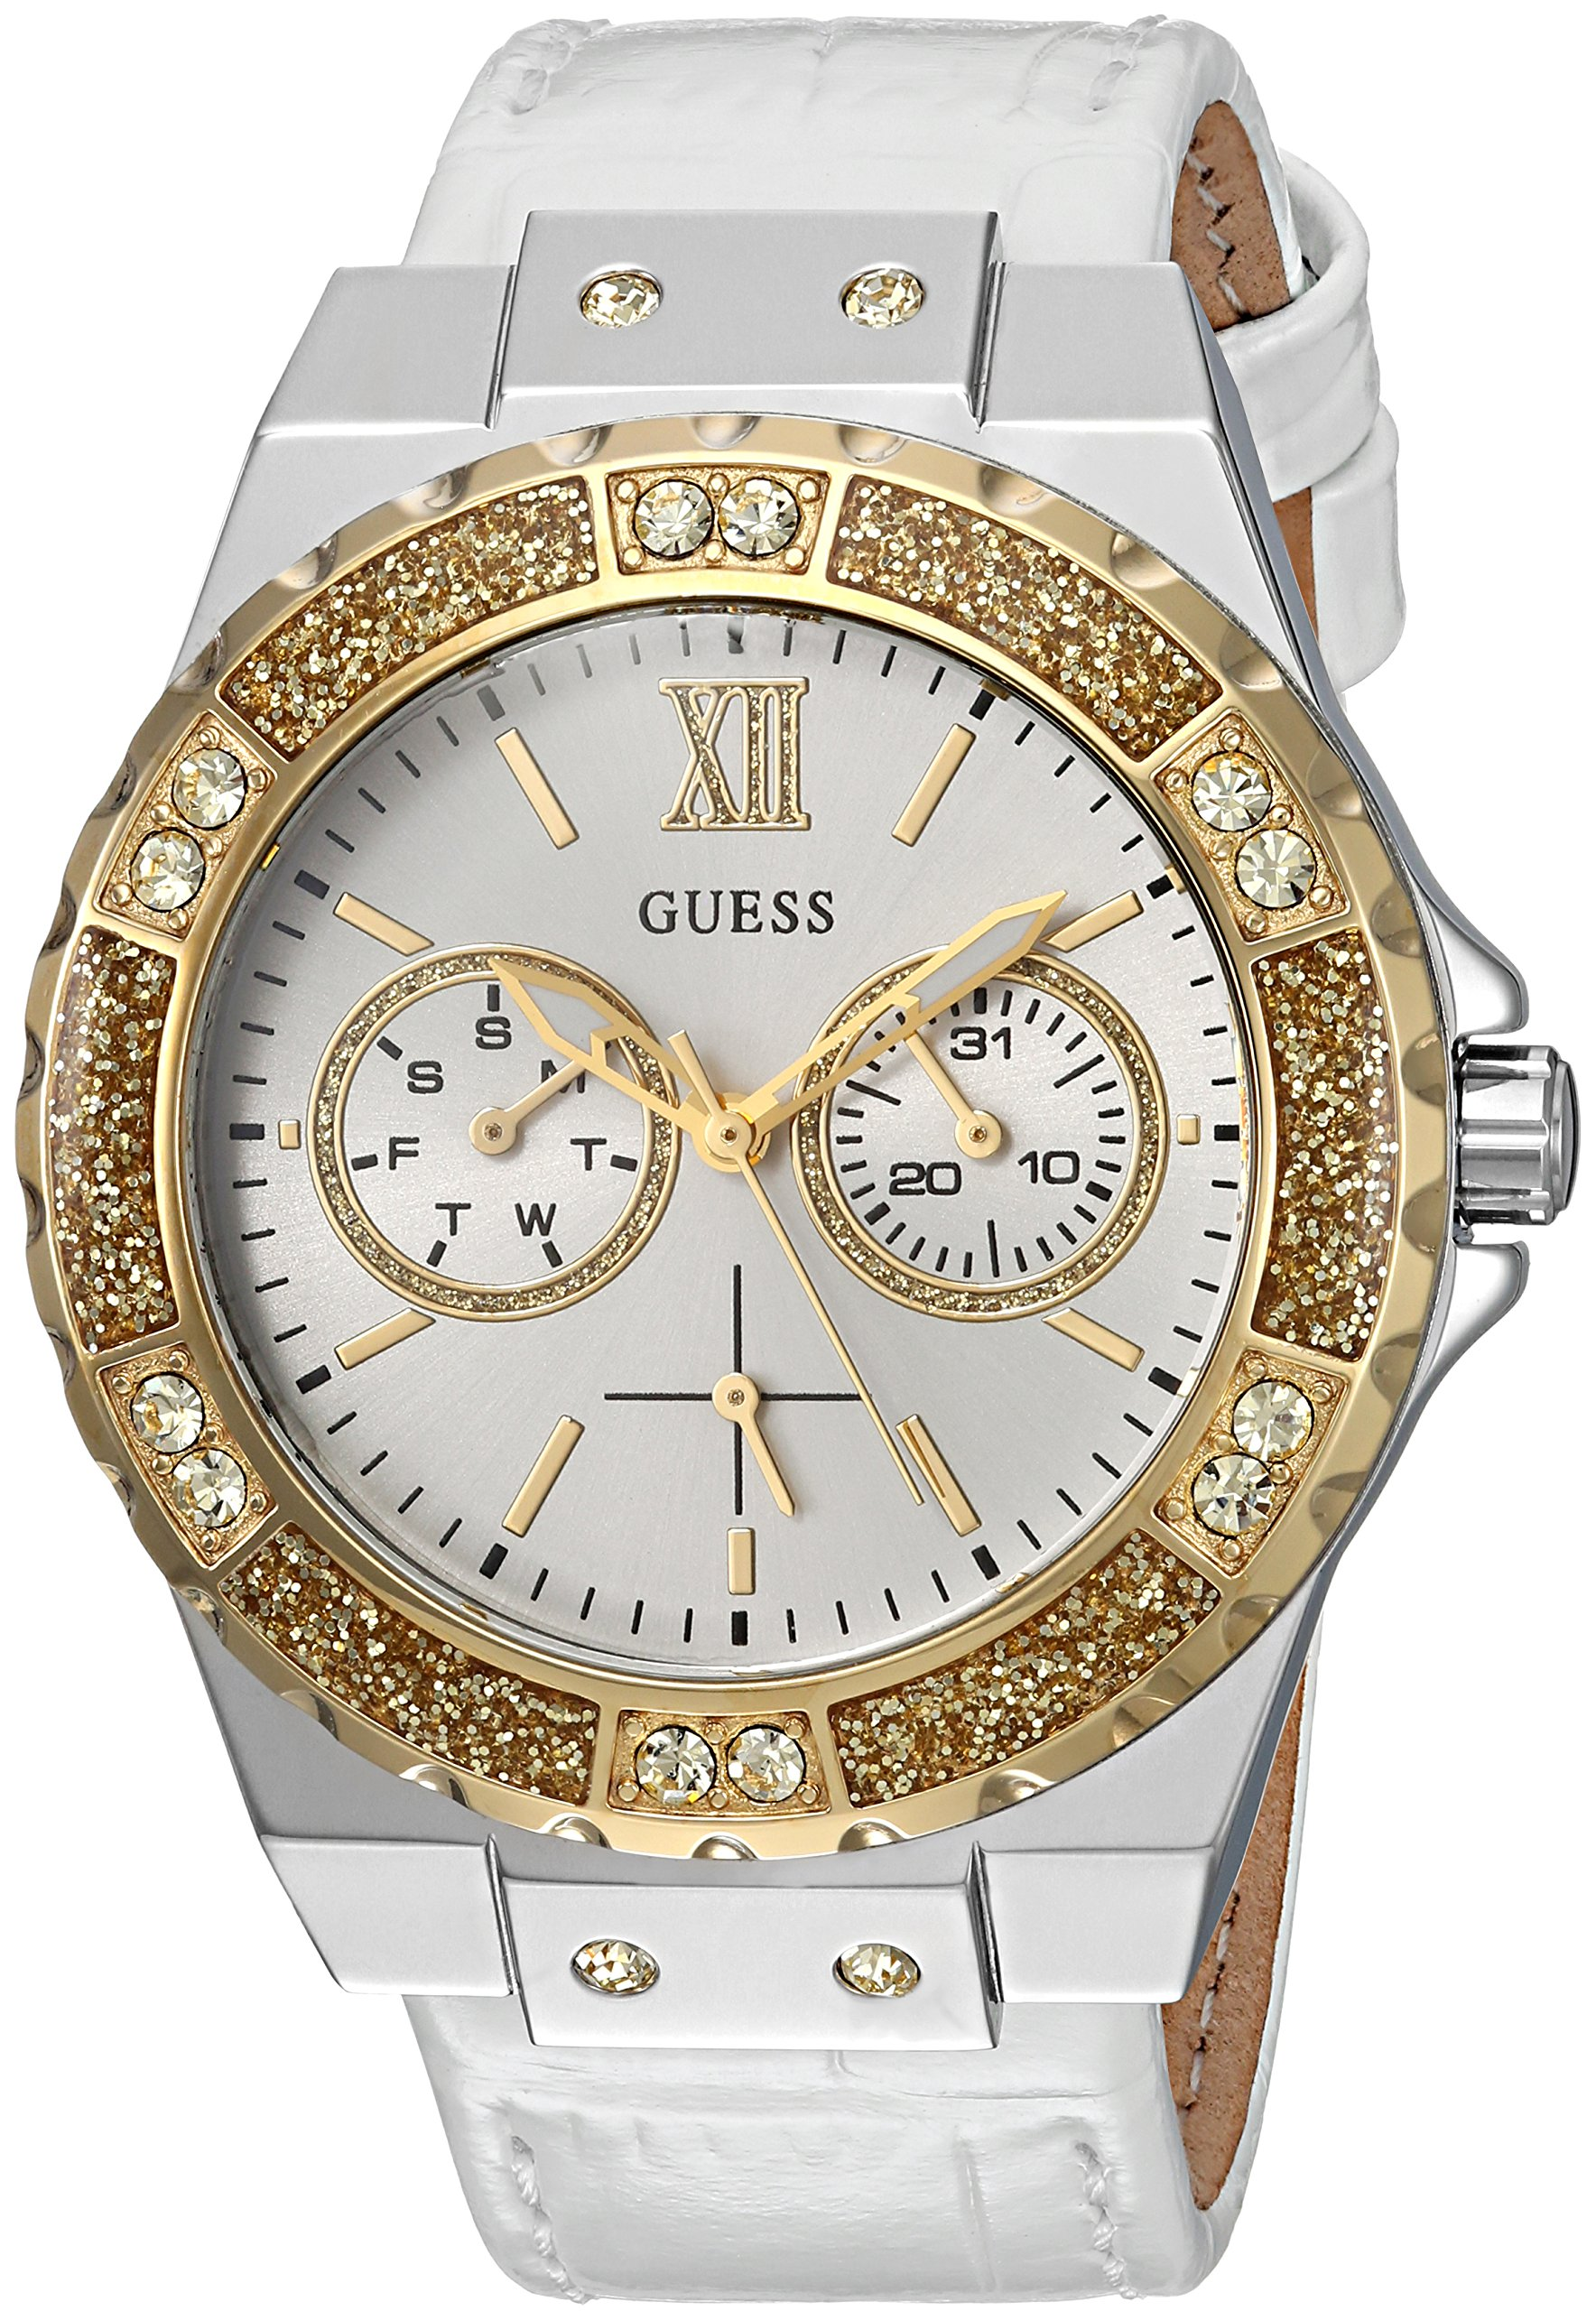 GUESS Women's Quartz Stainless Steel and Leather Casual Watch, Color:White (Model: U0775L8)